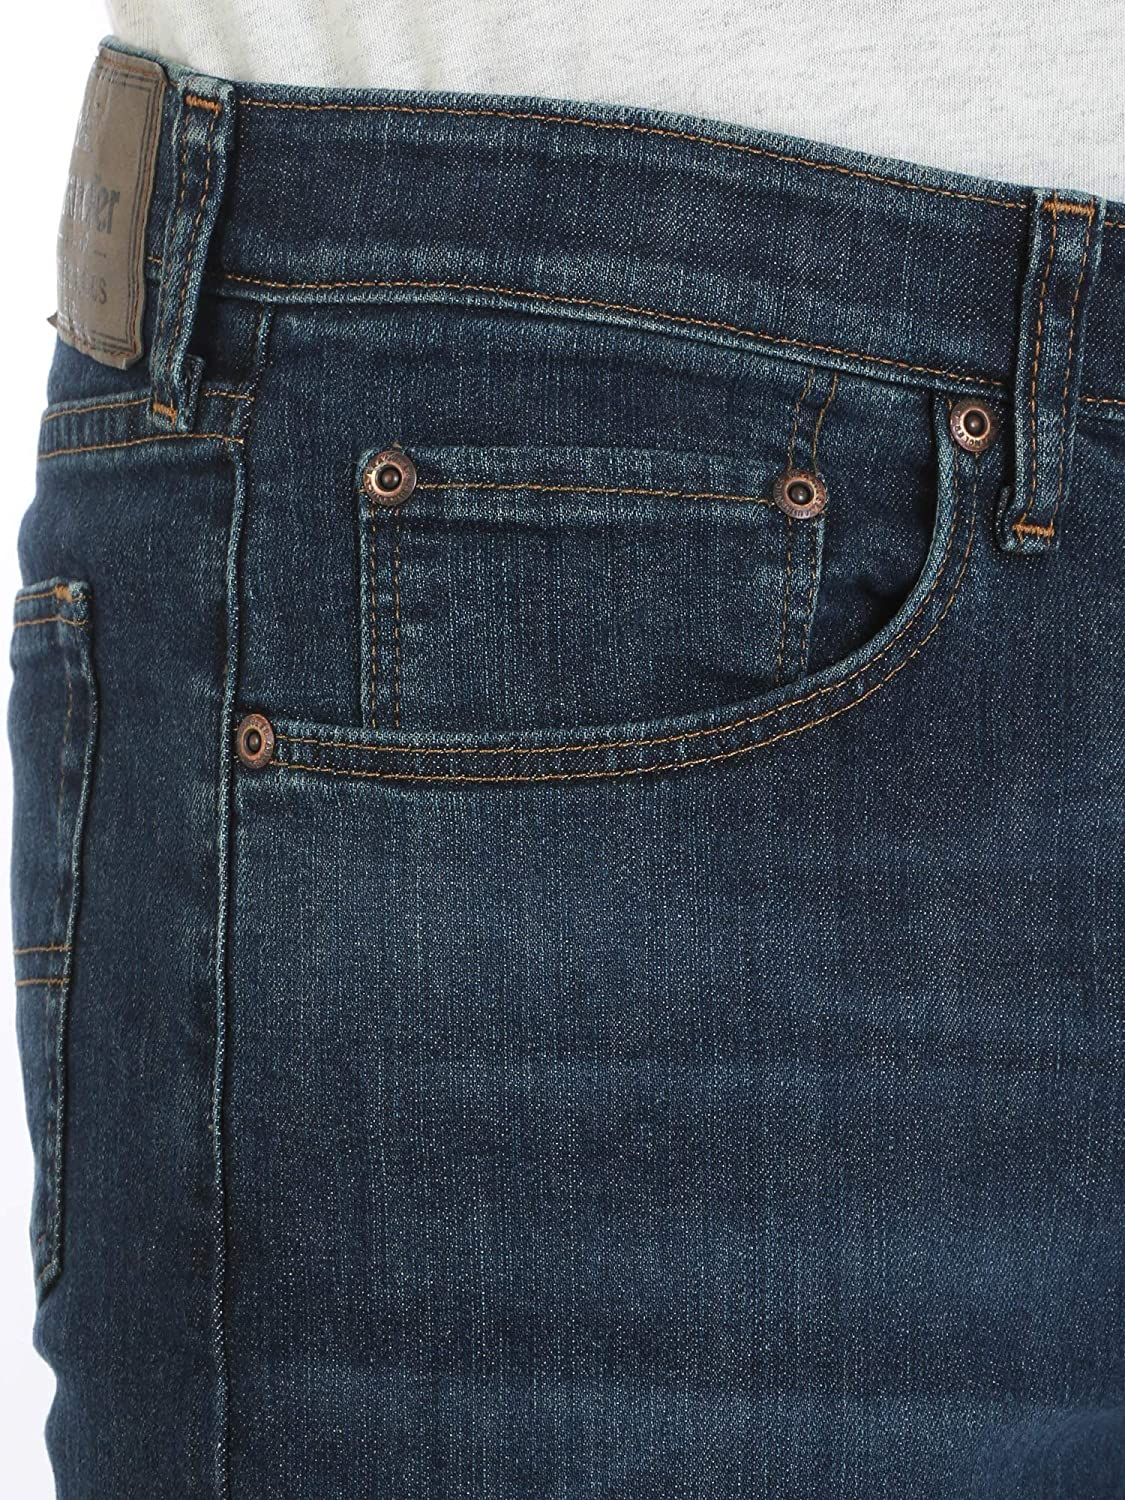 """STONE EDGE MENS STRAIGHT COMFORT FIT STRETCH JEANS WAIST 36/"""" LEG R//L ONLY£22.99"""